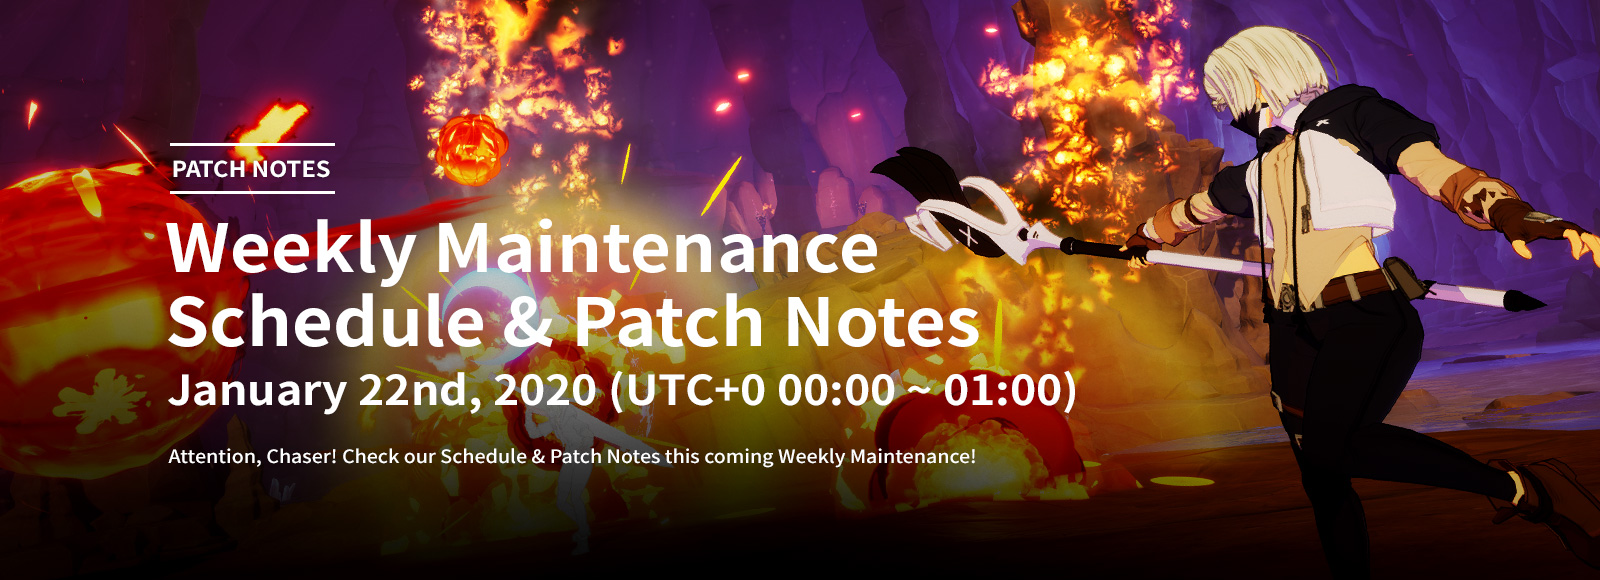 January 22nd 2020 Weekly Maintenance Schedule & Patch Notes